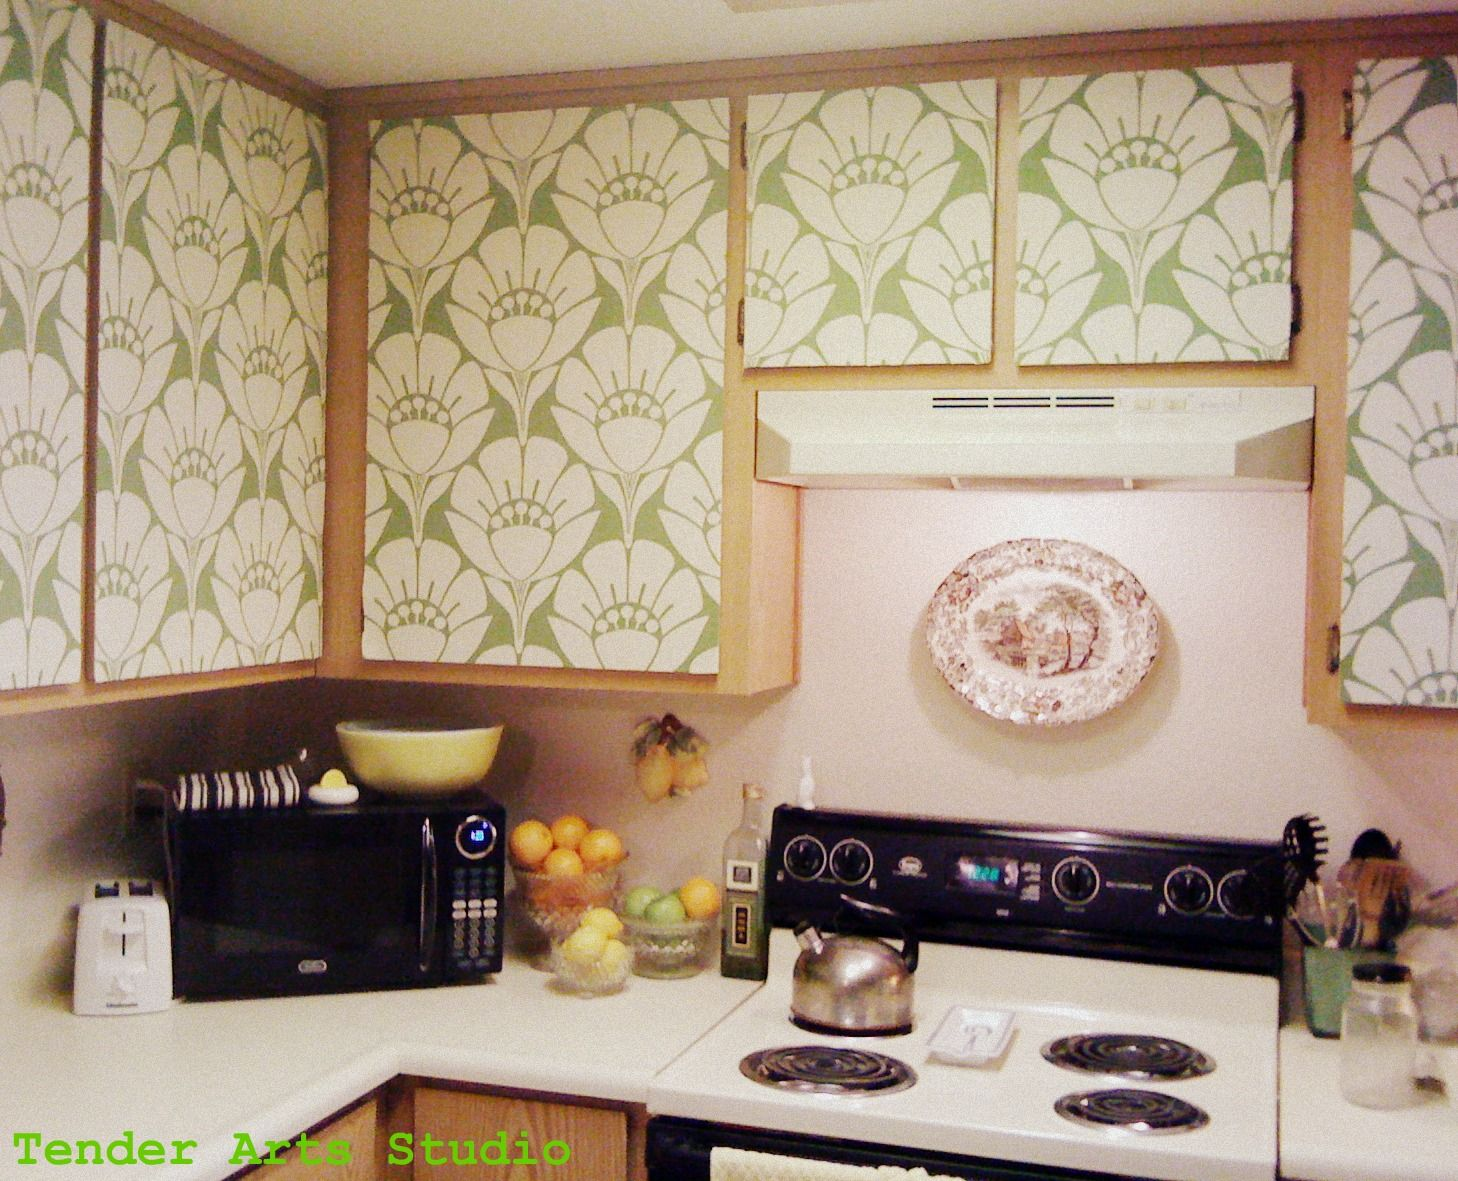 For Kitchen Cupboards Starch Covered Fabric For Kitchen Cupboards Easily Removable